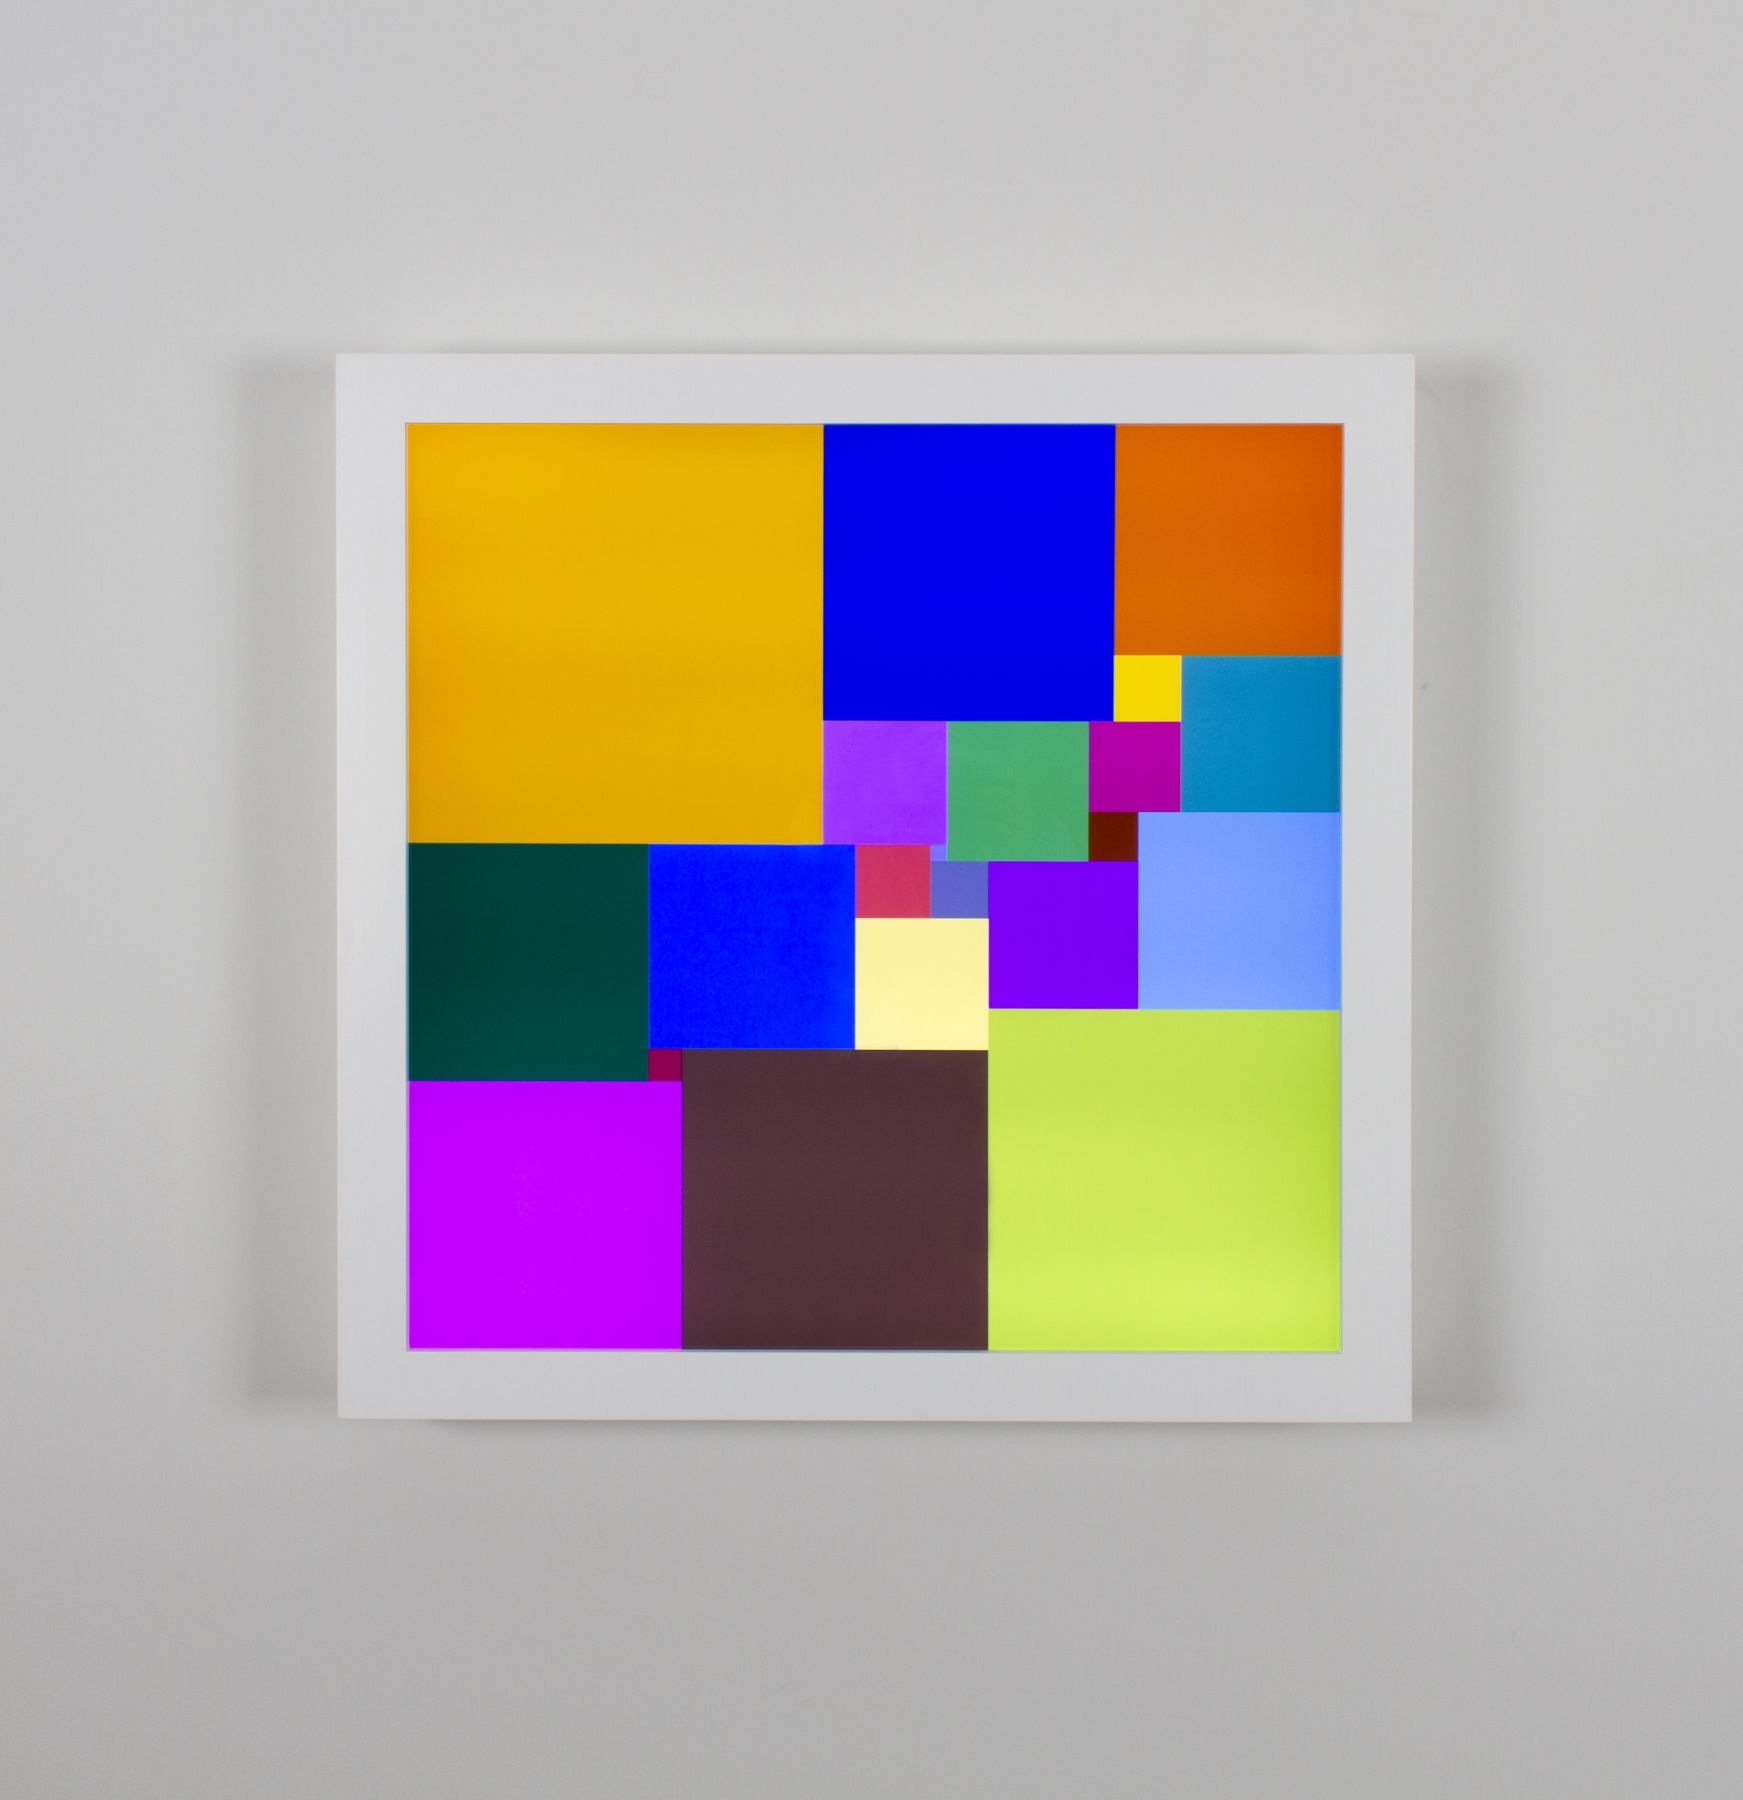 Spencer Finch Squared Square (21), 2018